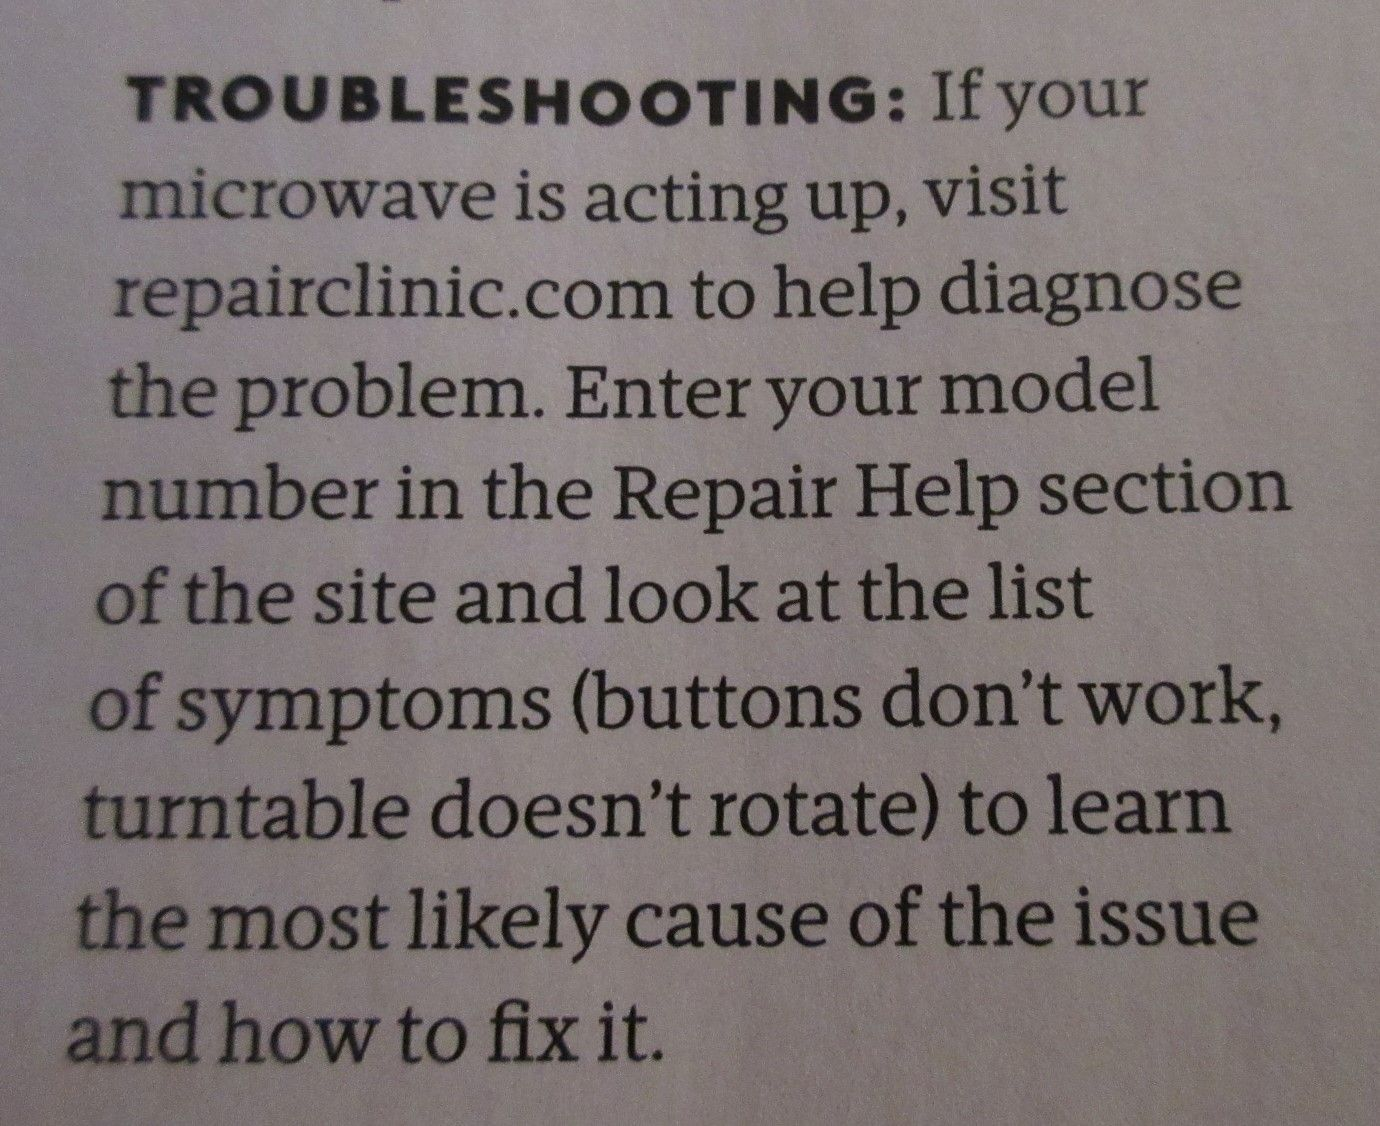 to help diagnose appliance problems